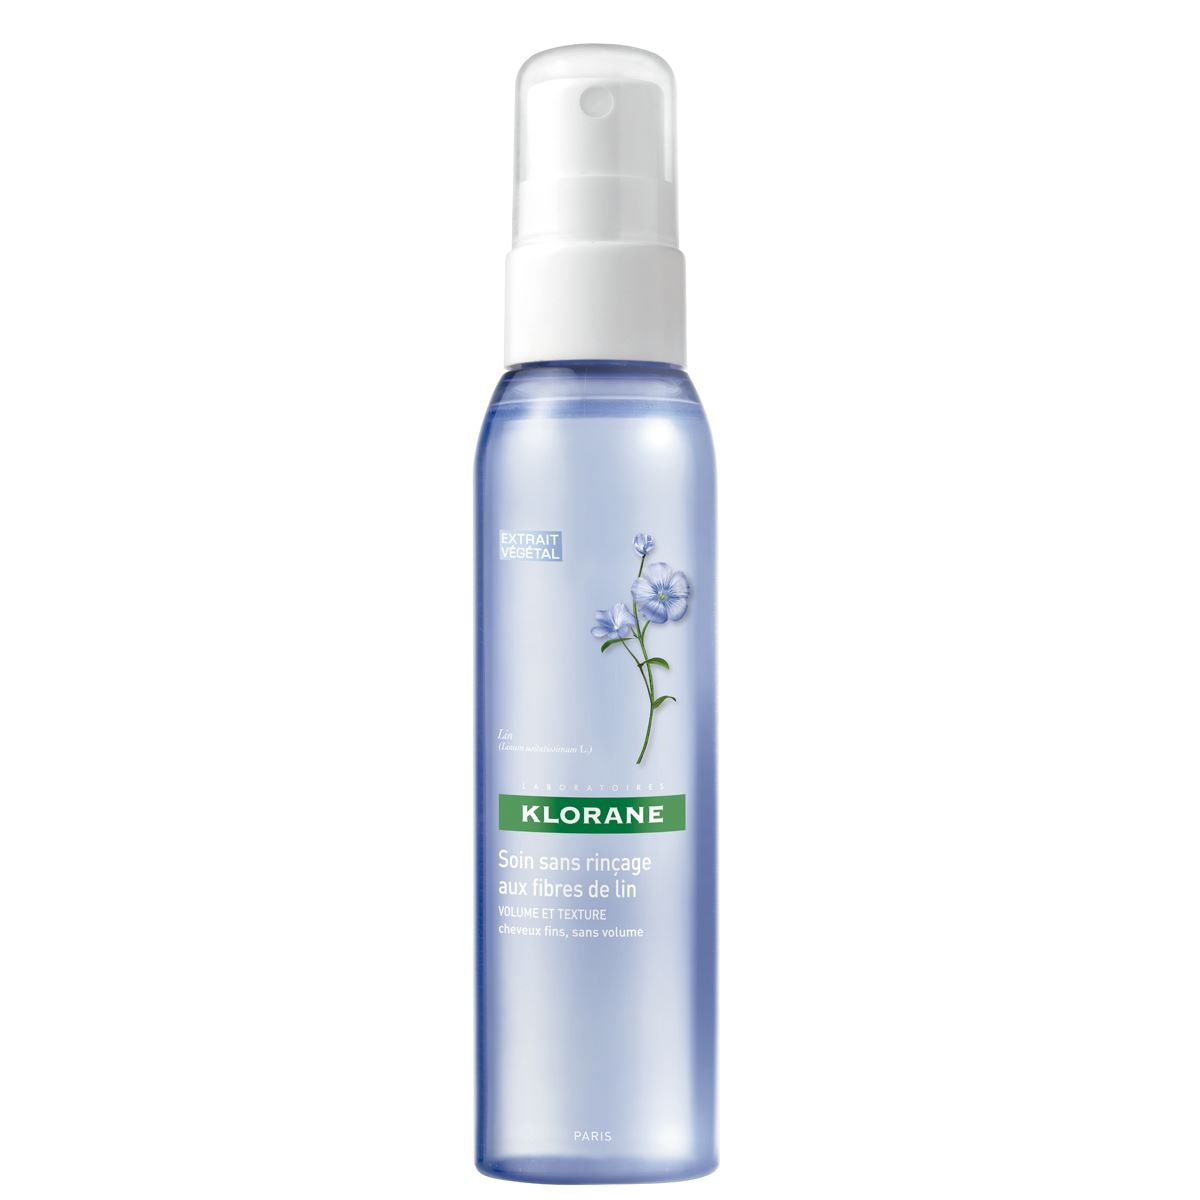 Spray lino 125ml  - Sanborns